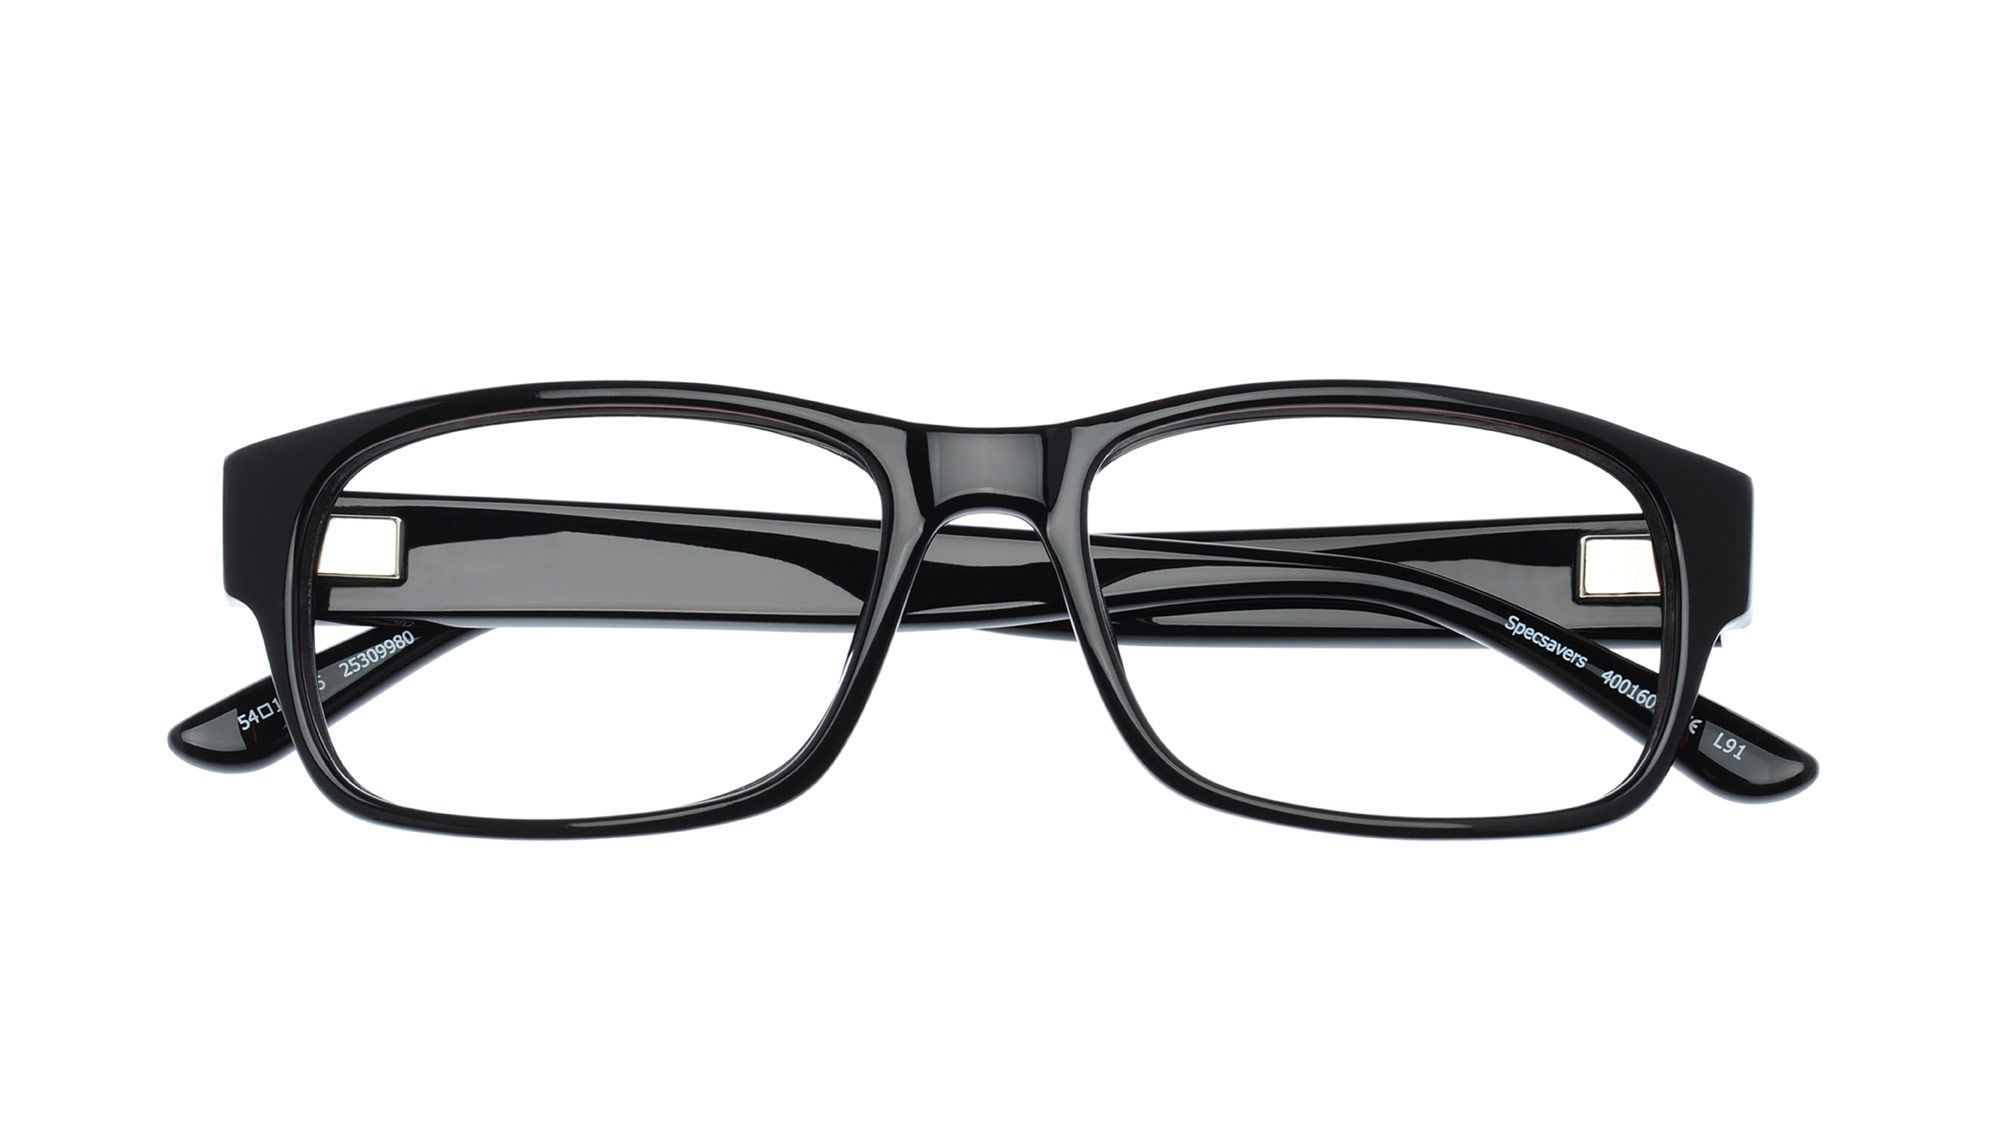 TIMBERLAND 1210 Glasses by Timberland  790256ad9